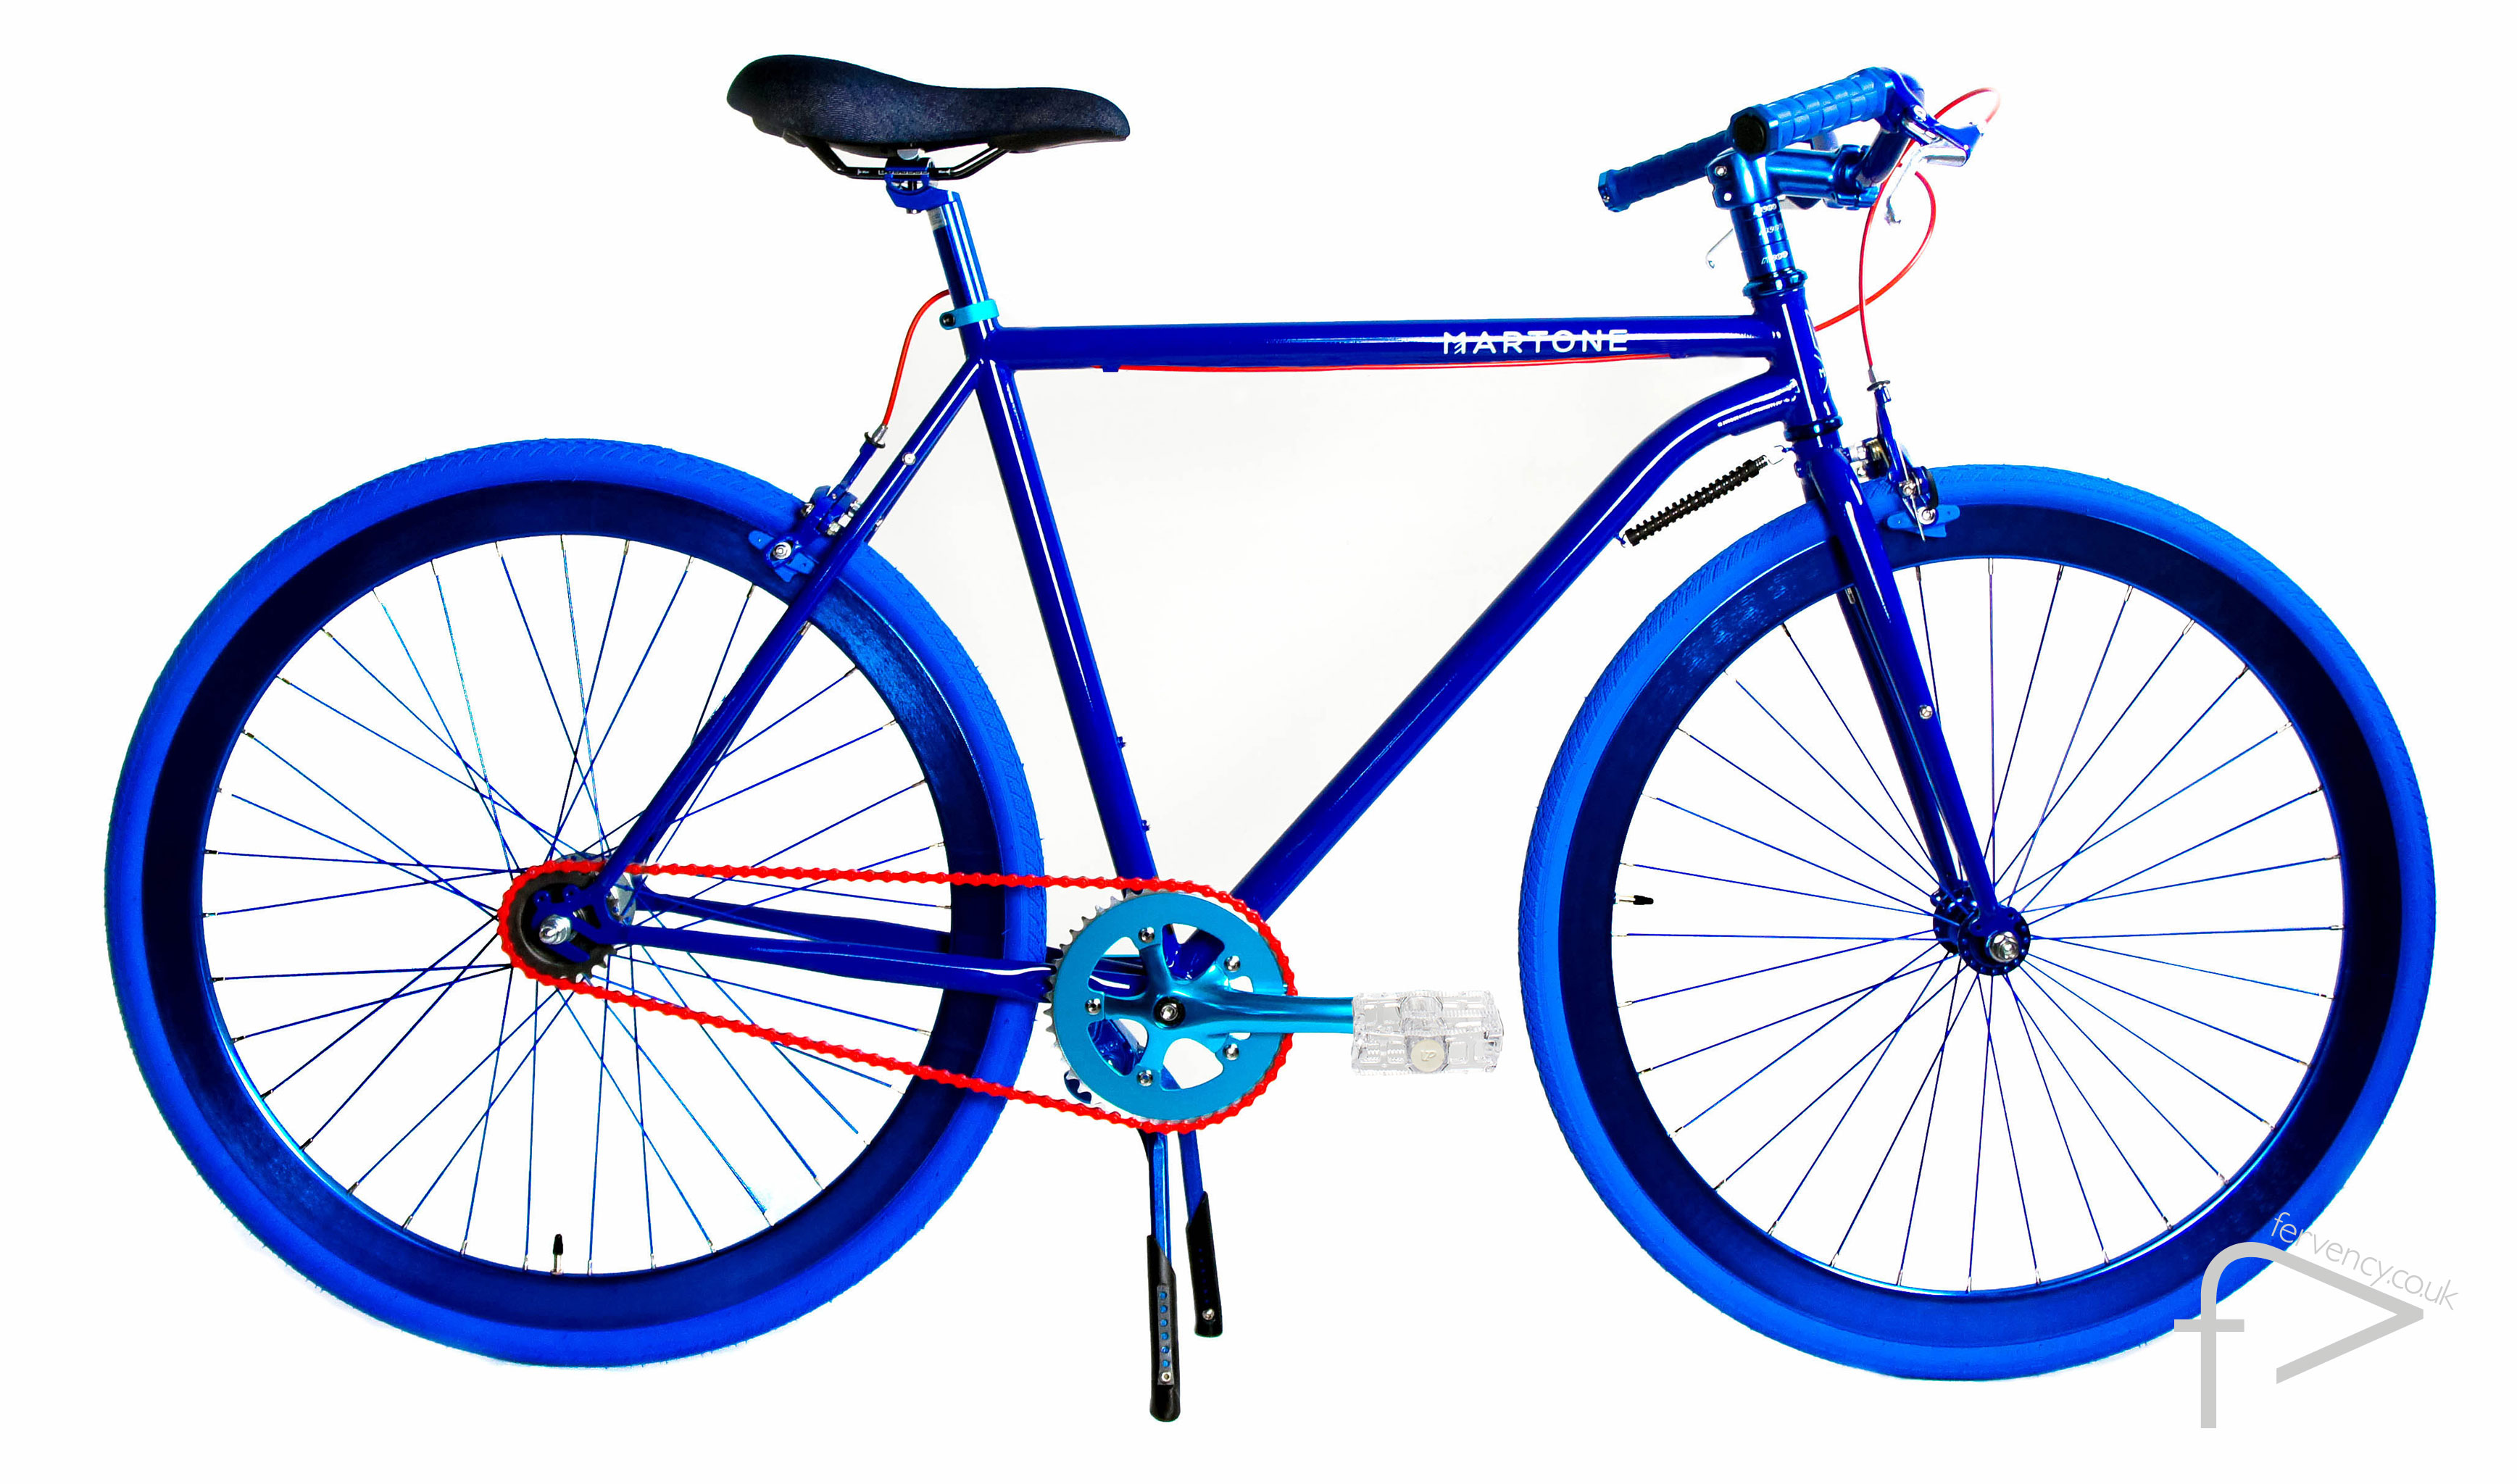 Chelsea Blue Bike UK